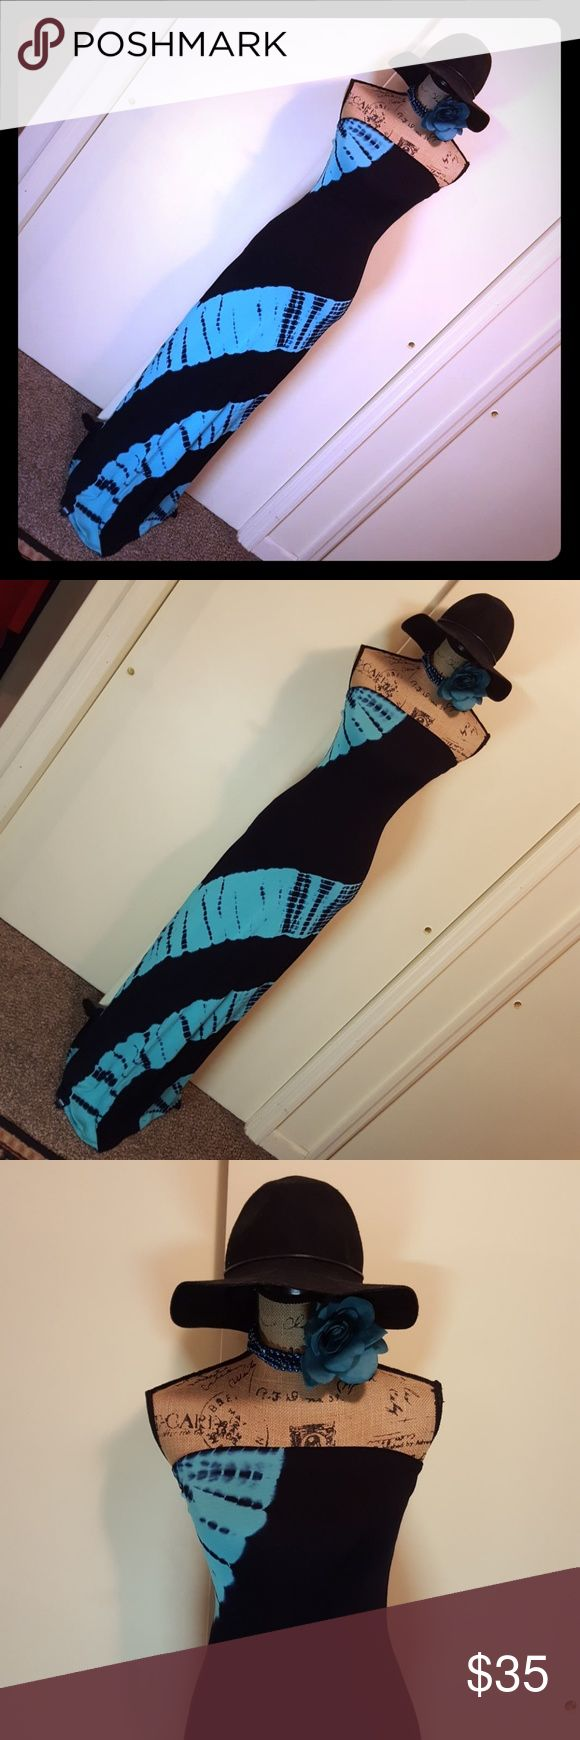 💙LONG STRAPLESS MAXI DRESS💙 💙Black with Turquoise TieDie Maxi💙 💙Size Medium💙 💙Fits More Like A Size Small💙 💙Listing As A Size Small💙 💙Brand On Last Picture💙 💙New Never Worn💙 💙Excellent Condition💙 💙 Dresses Maxi